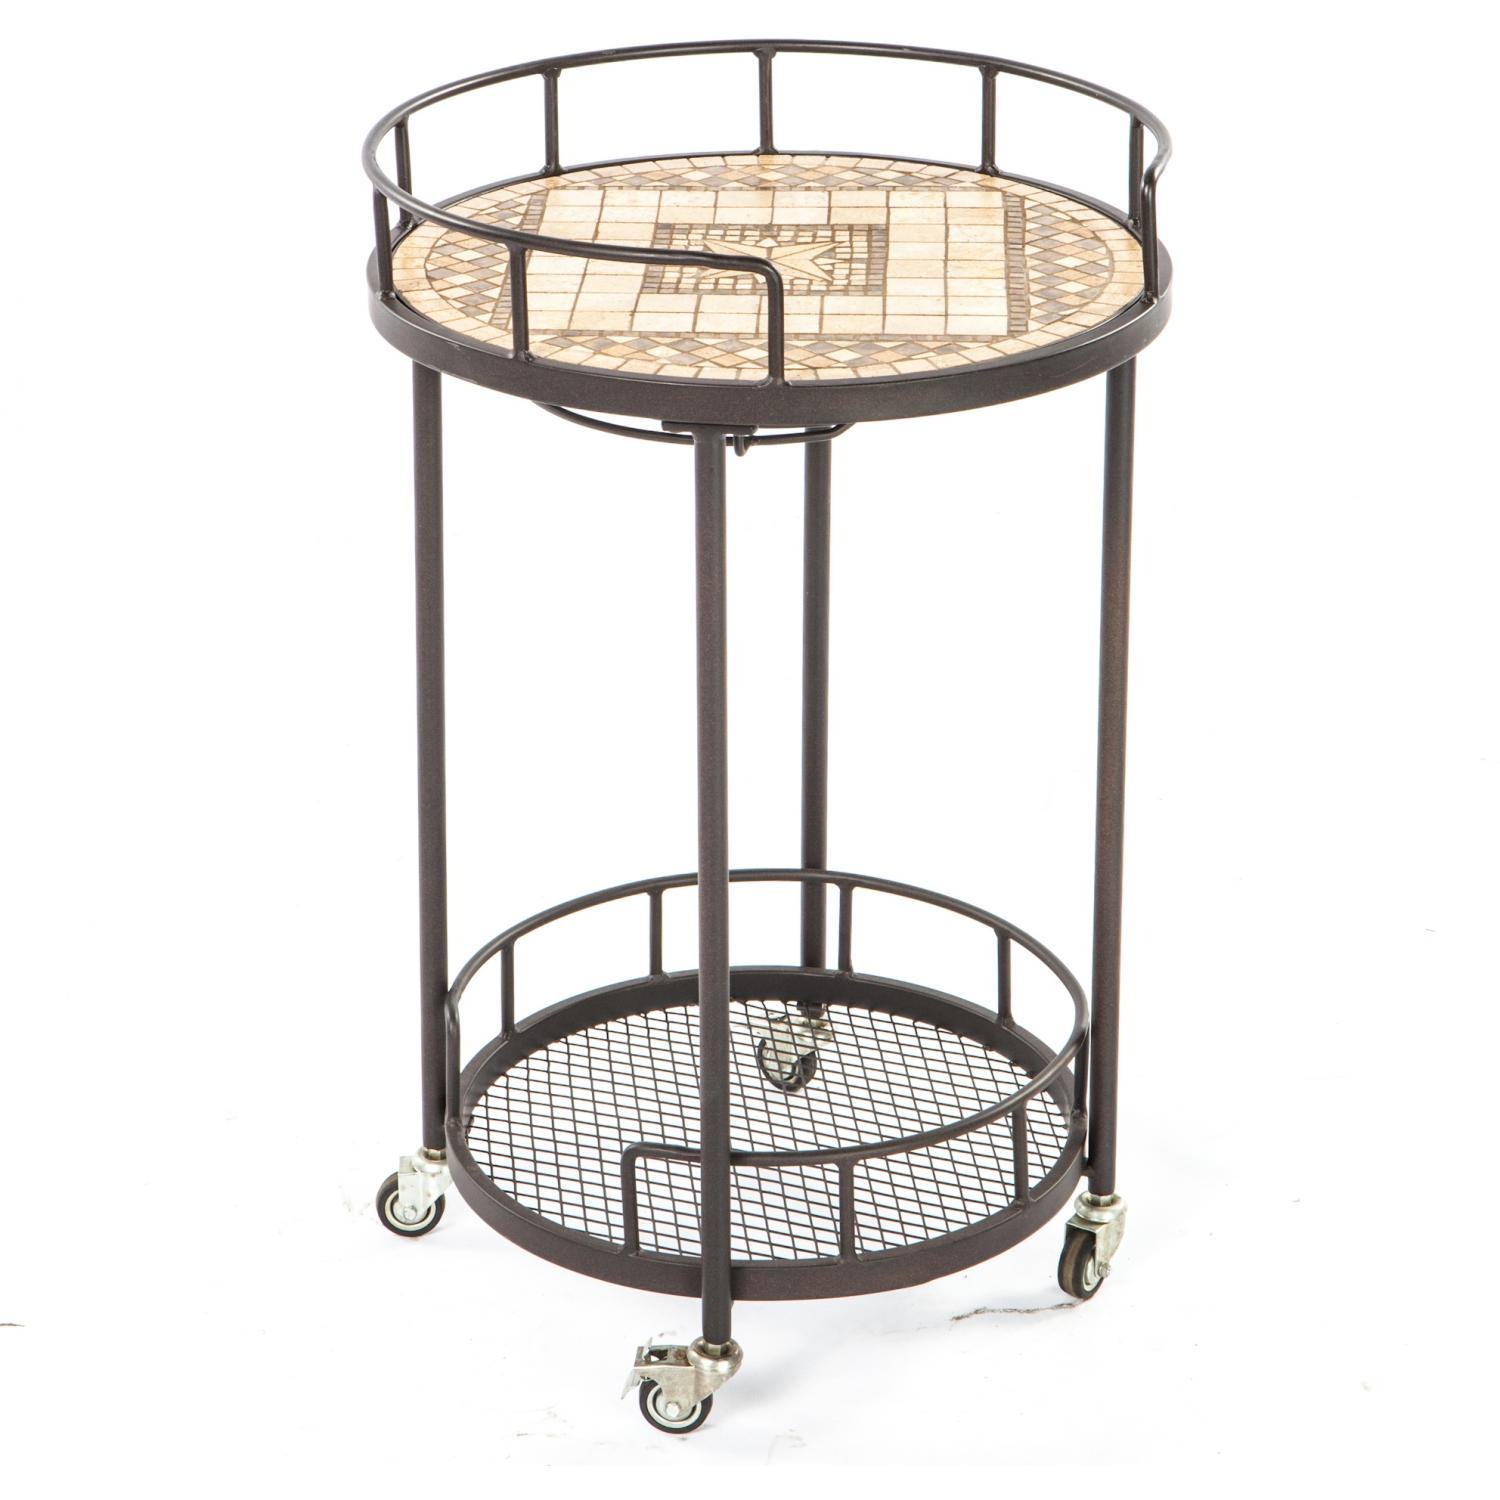 Picture of Alfresco Home Basilica Mosaic Outdoor Serving Cart